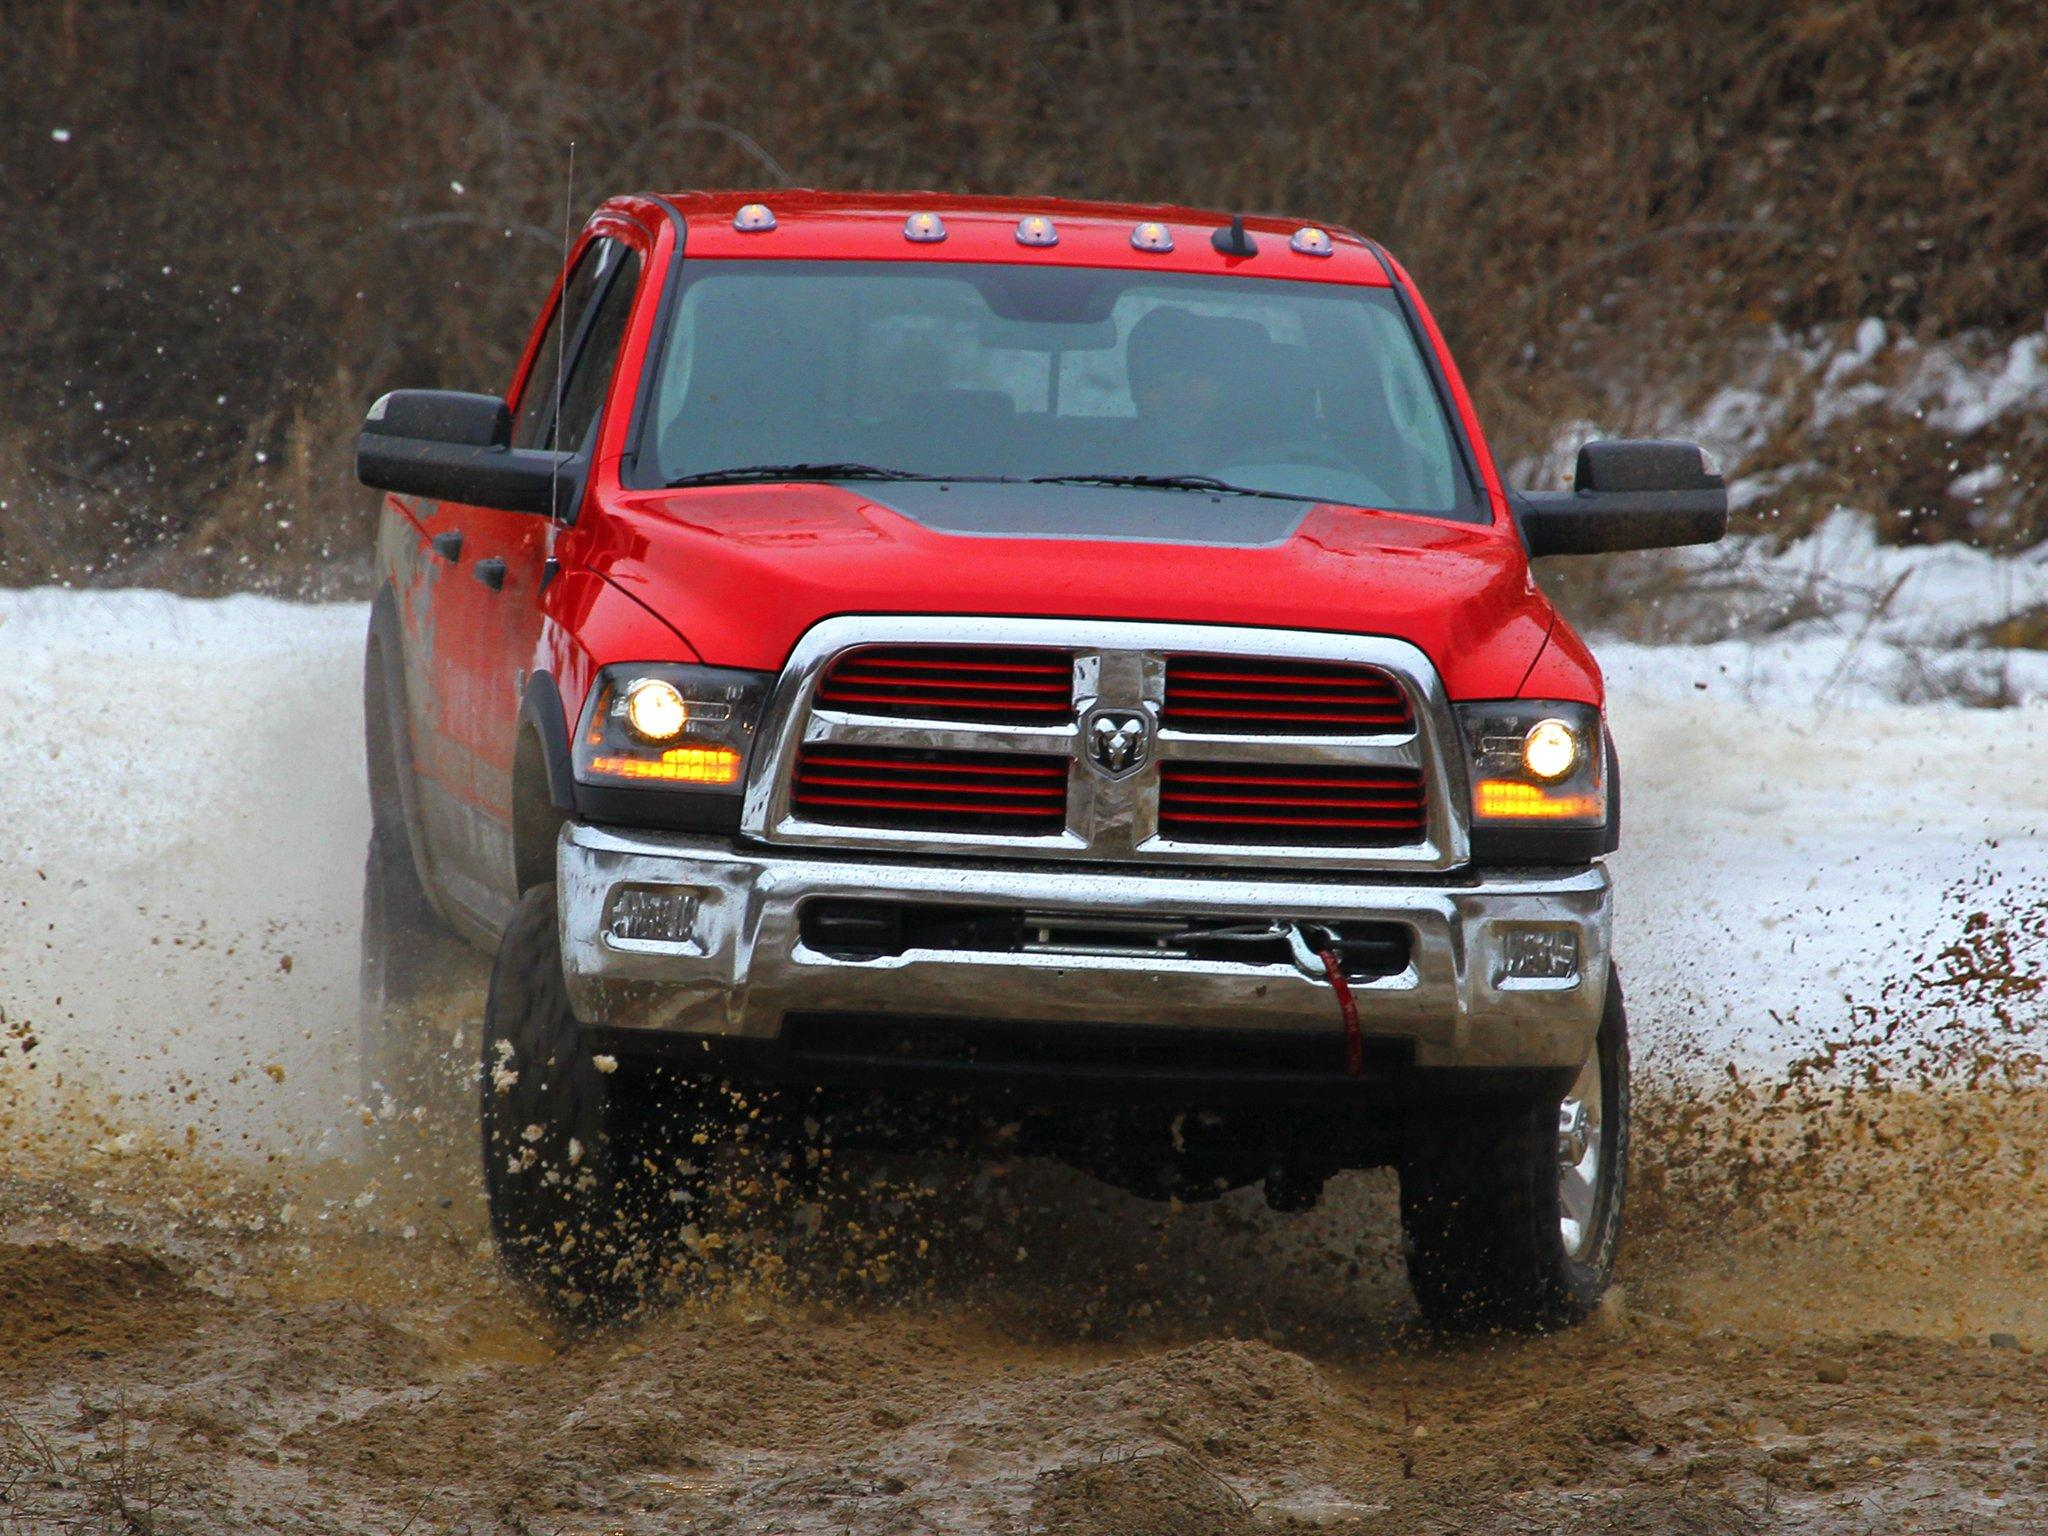 Dodge Ram Iphone Wallpaper Dodge Ram 2500 1370396 Hd Wallpaper Backgrounds Download